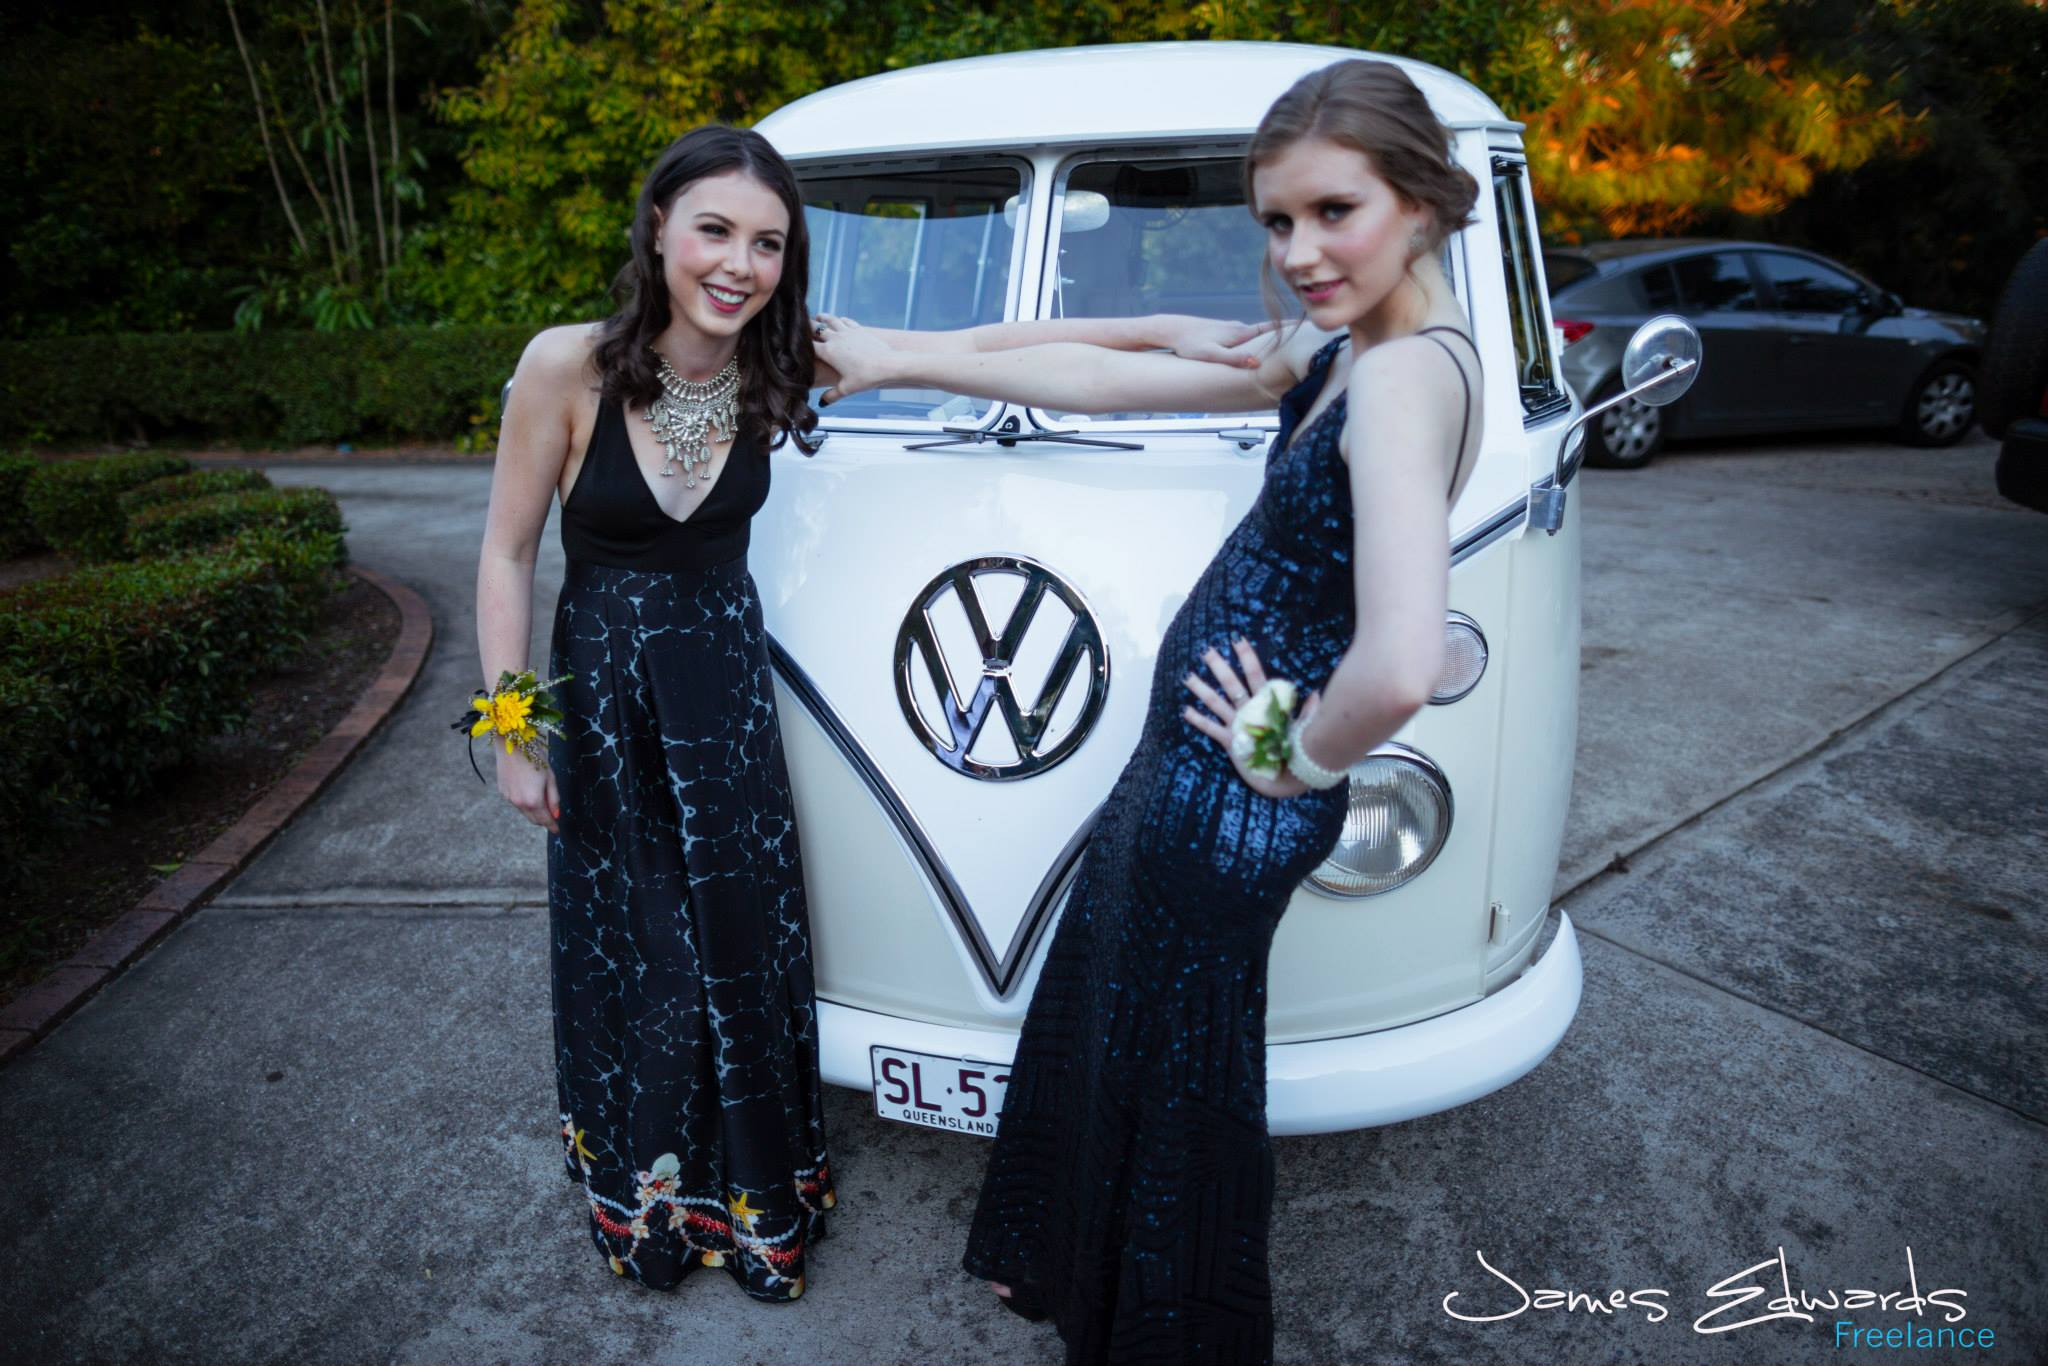 2015-08-14 formal-LeaAnne & Kirrily - lola (10).jpg